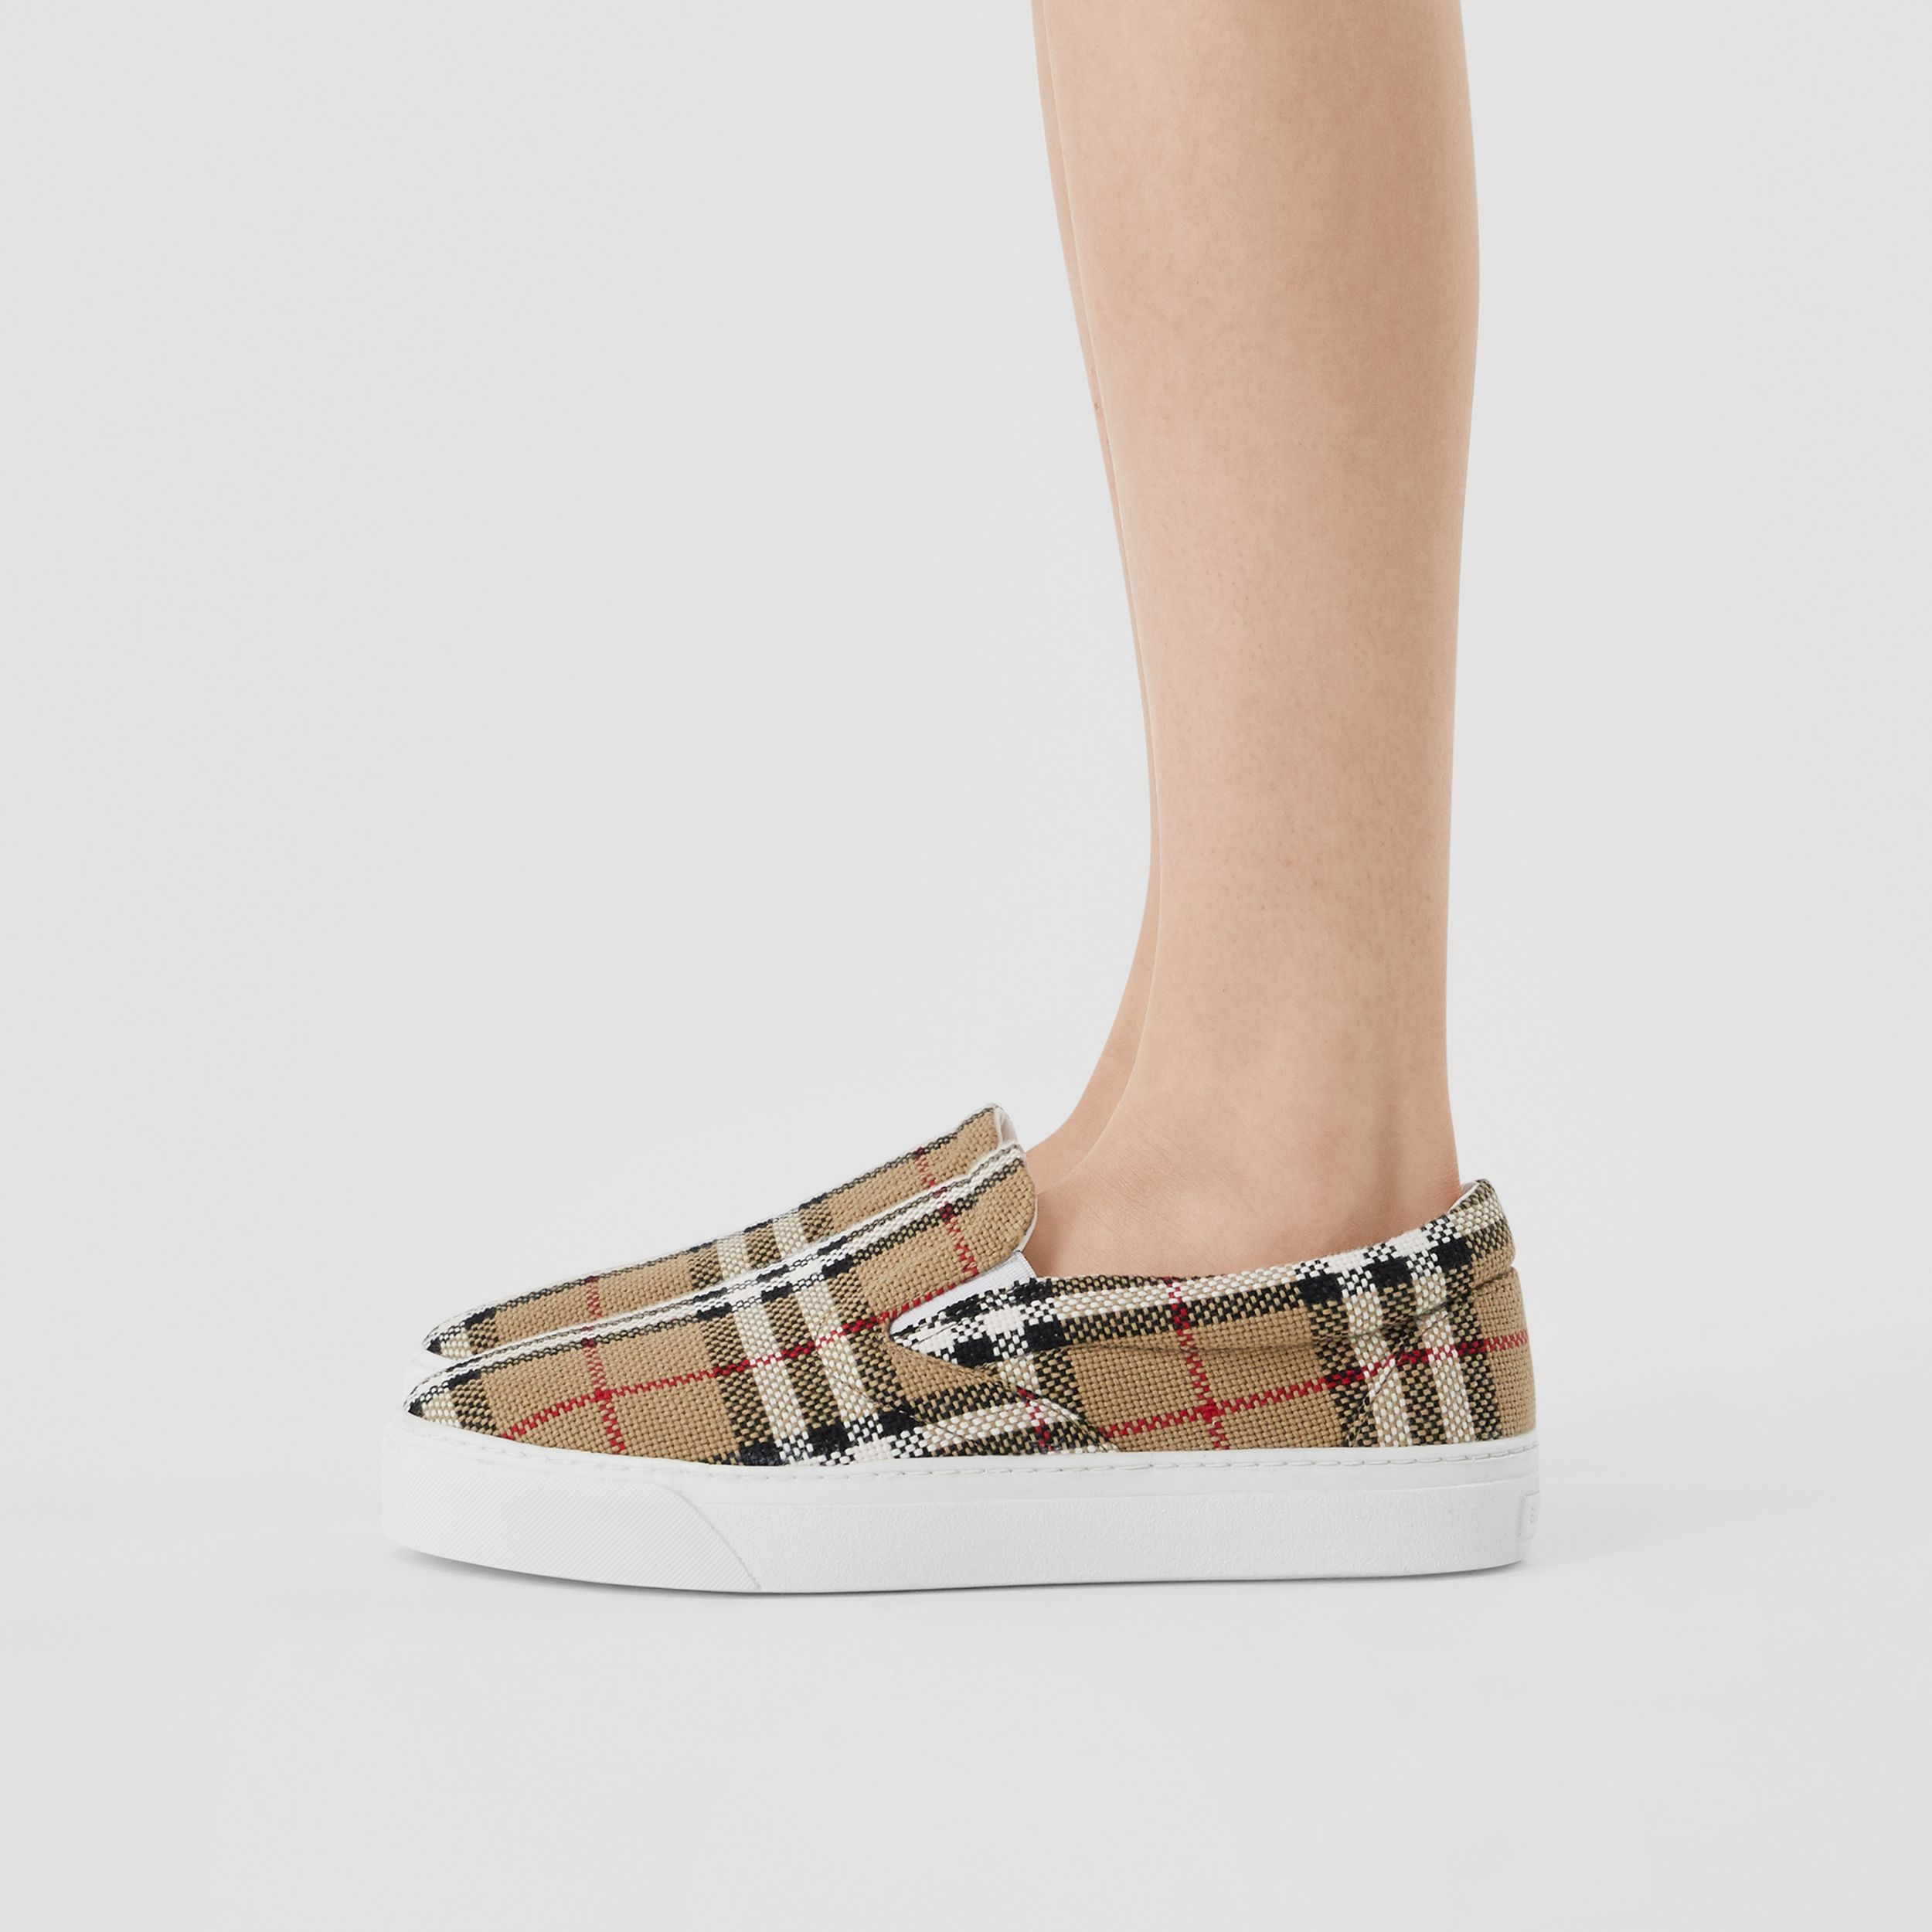 Bio-based Sole Latticed Cotton Slip-on Sneakers in Archive Beige - Women | Burberry Australia - 3